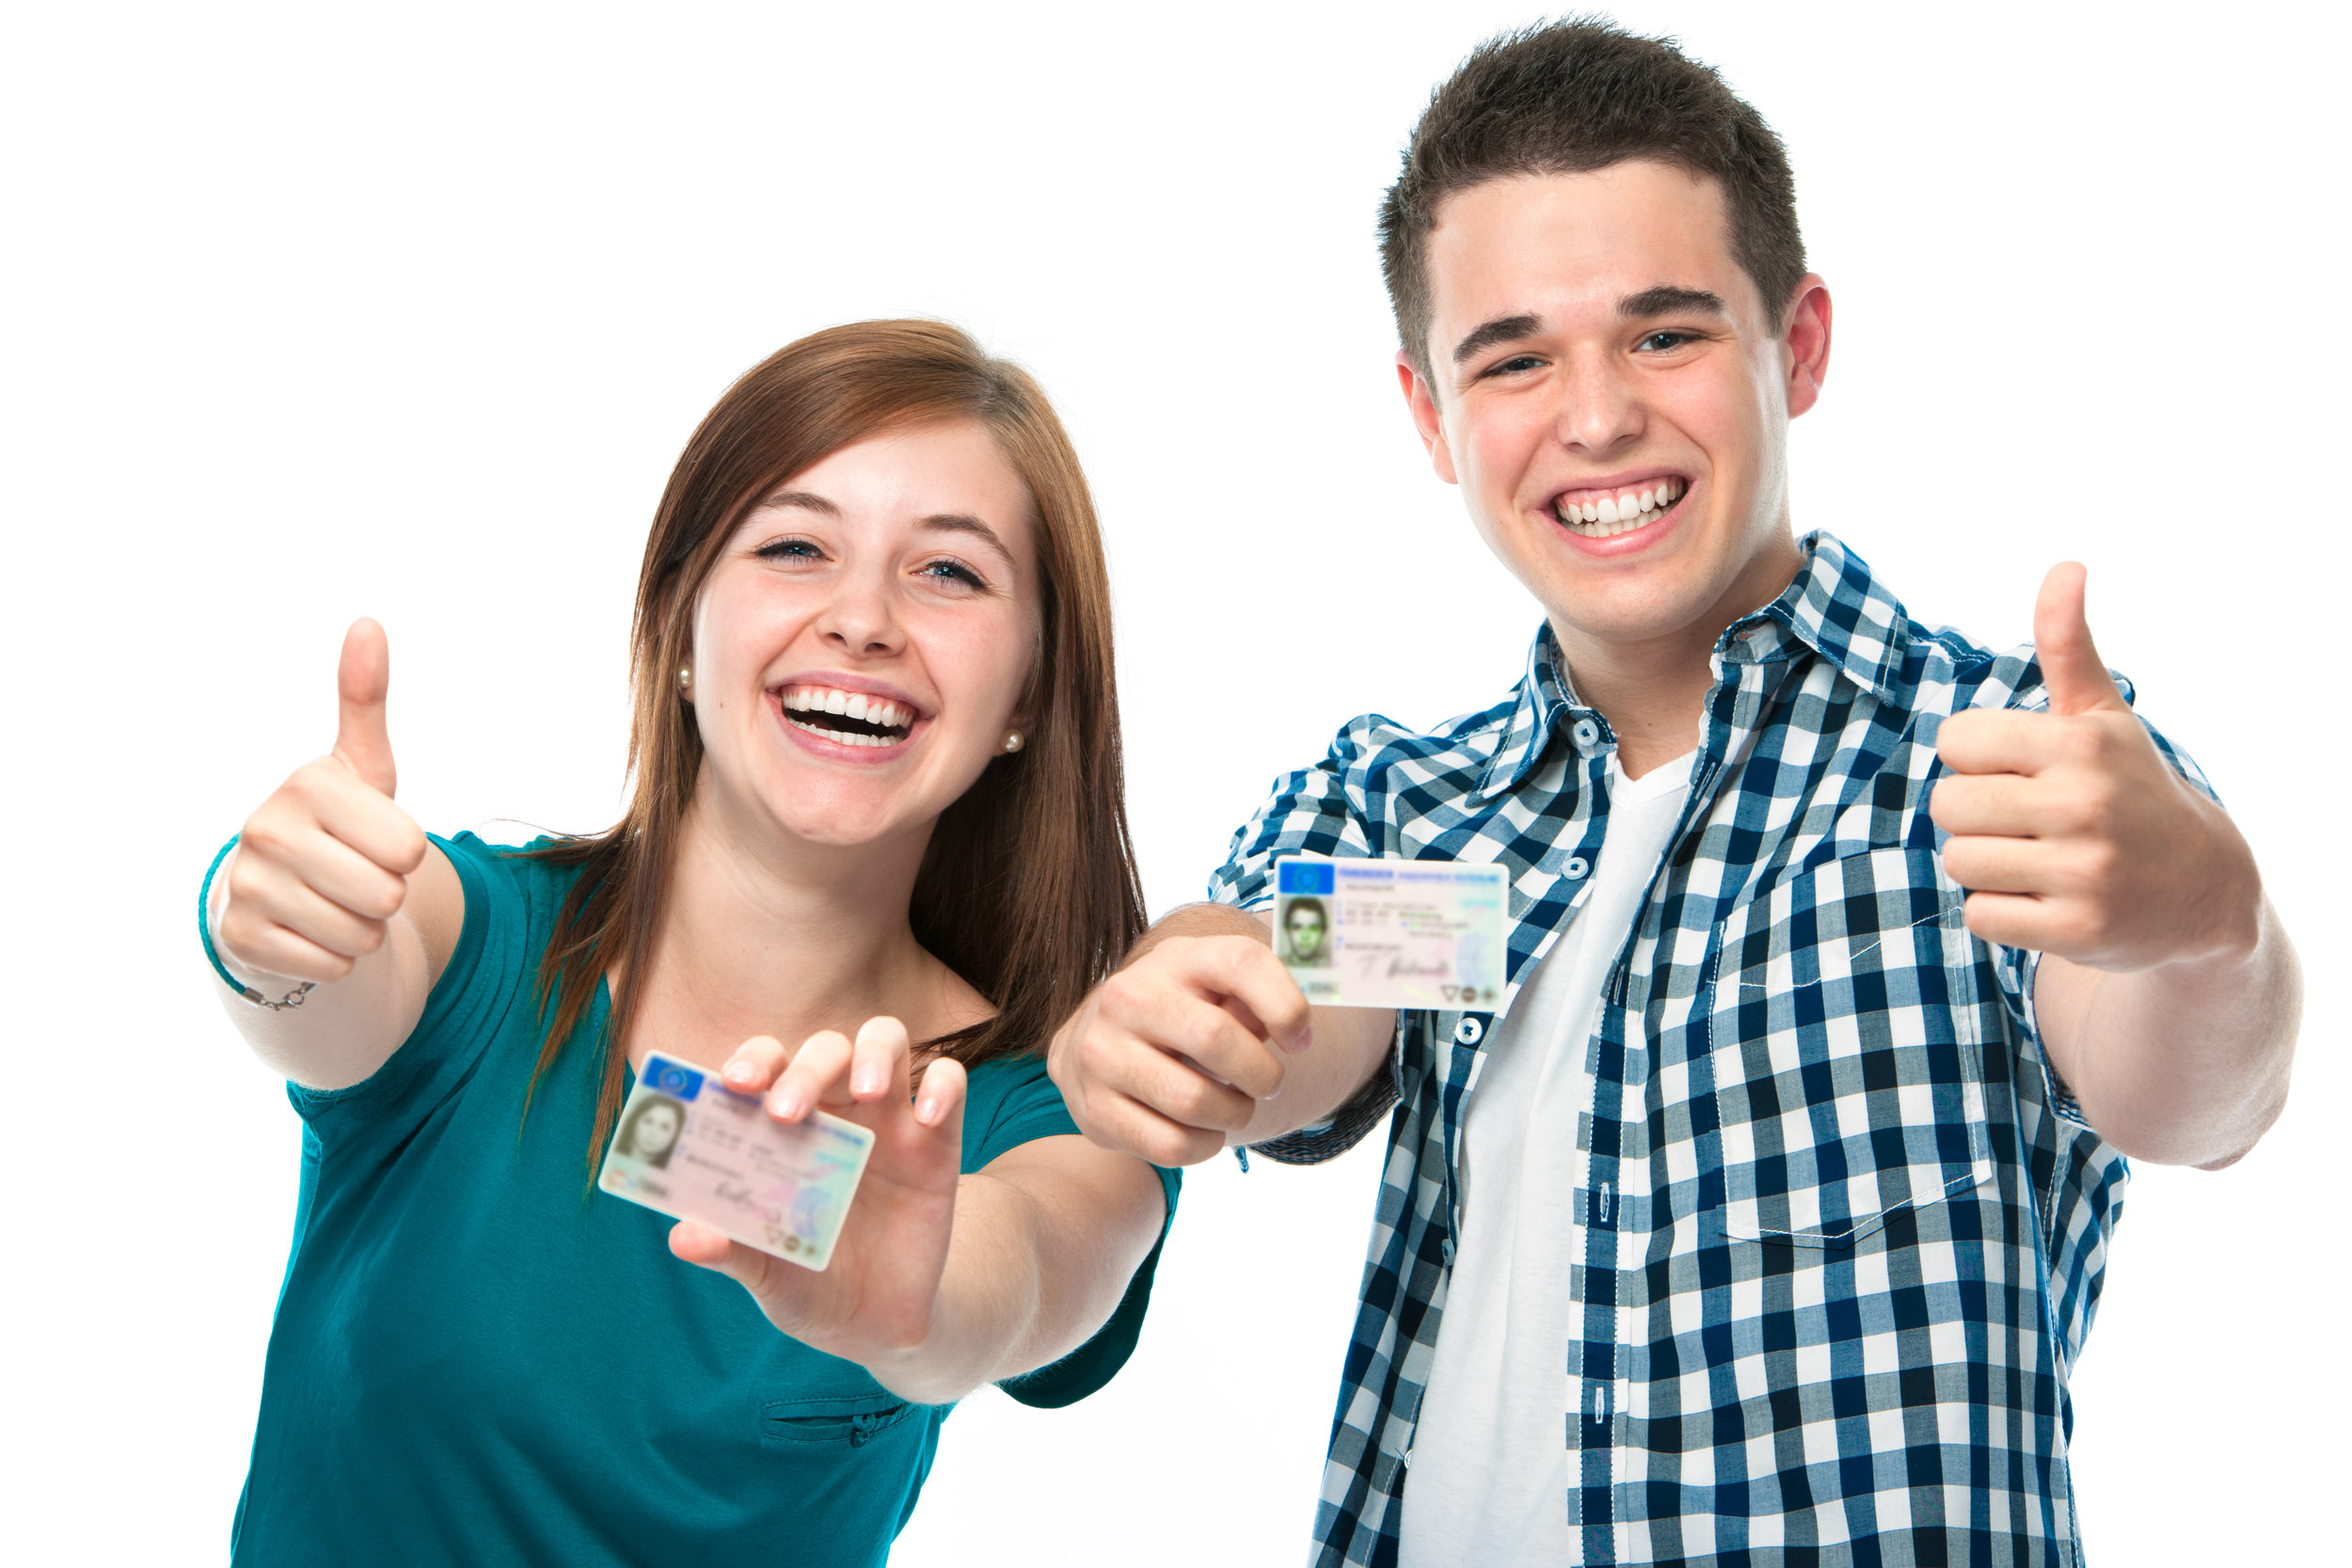 Boy-and-Girl-Teens-Holding-Drivers-License-with-Thumbs-Up.jpg